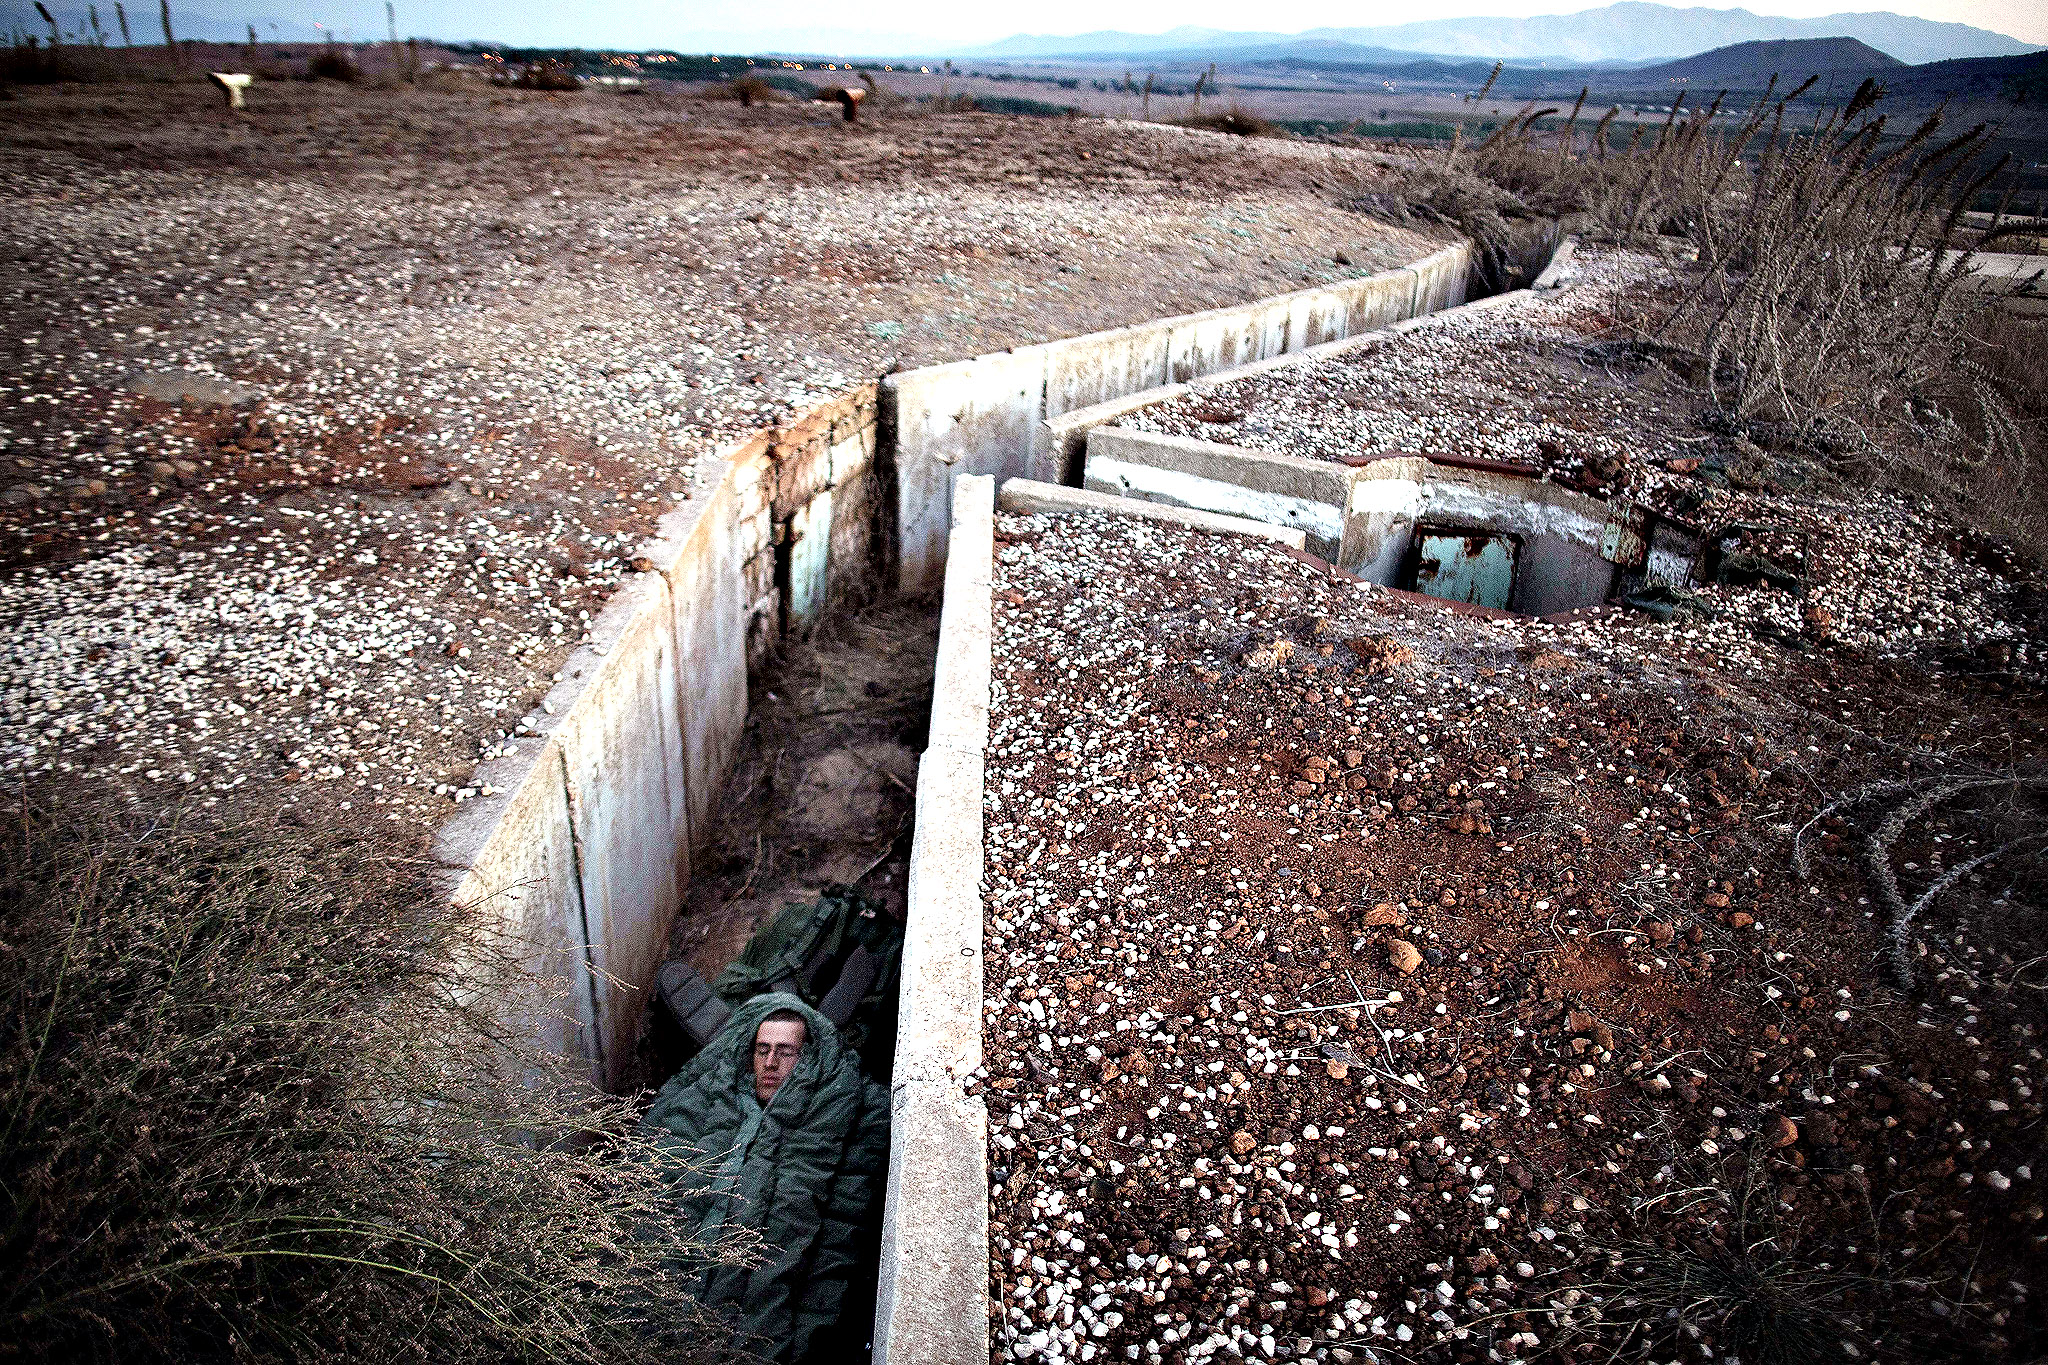 An Israeli soldier sleeps in a bunker in a training area in the Israeli-annexed Golan Heights during a brigade Armoured Corps Exercise on October 16, 2013. The Golan, seized by Israel from its Arab neighbour in the 1967 Six-Day War, has been mostly quiet since the 1973 Yom Kippur War. Tension, however, has risen since the 2011 start of the conflict in Syria between rebels and regime forces.